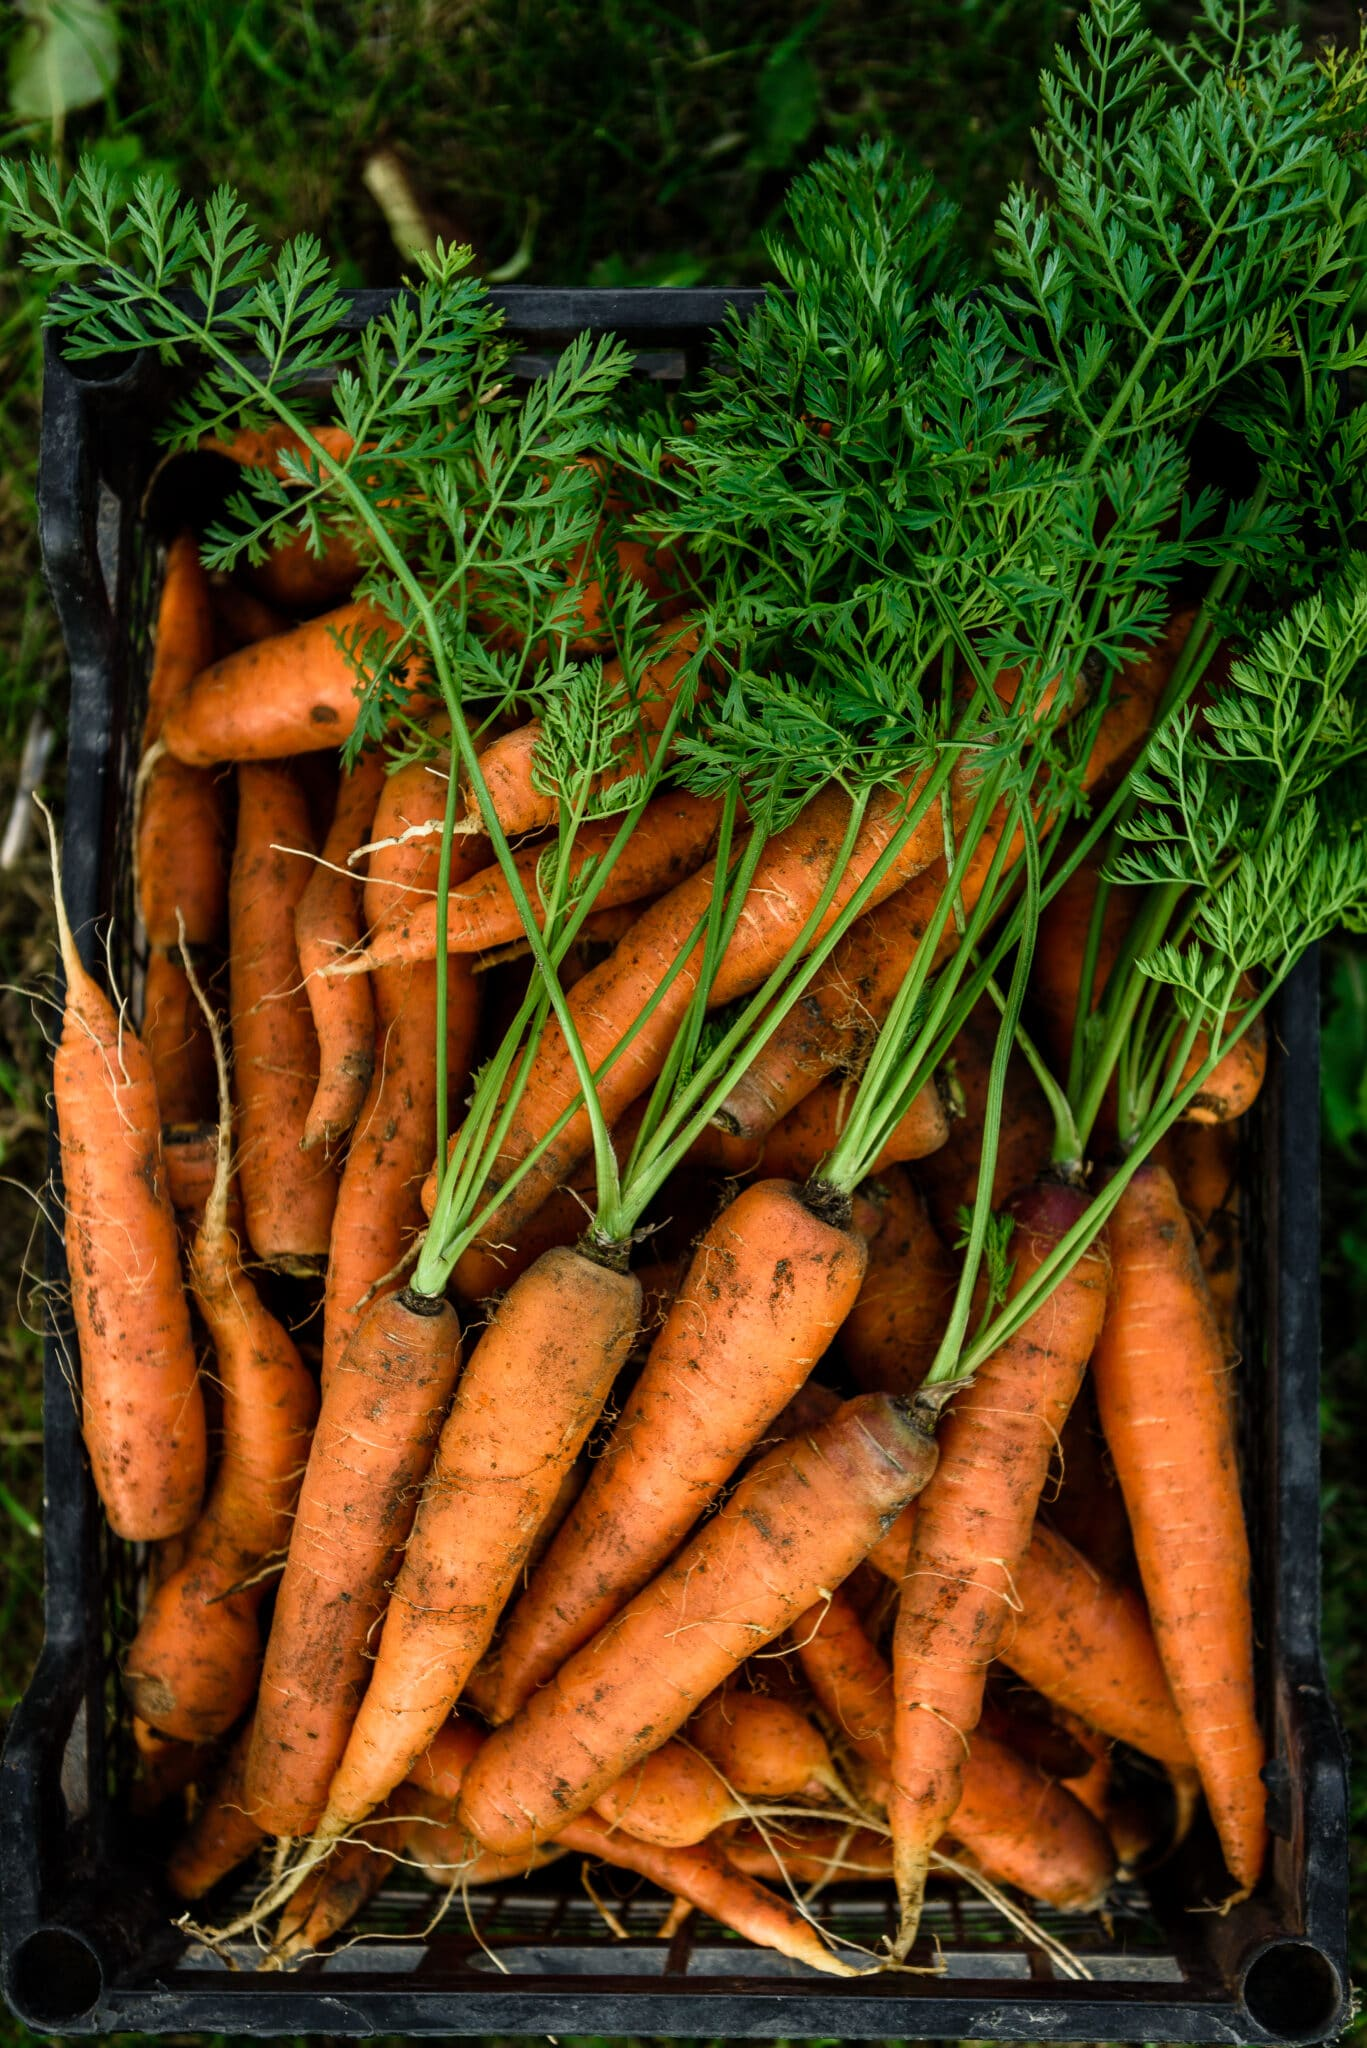 Freshly harvested carrots sitting in a black crate ready to be washed.